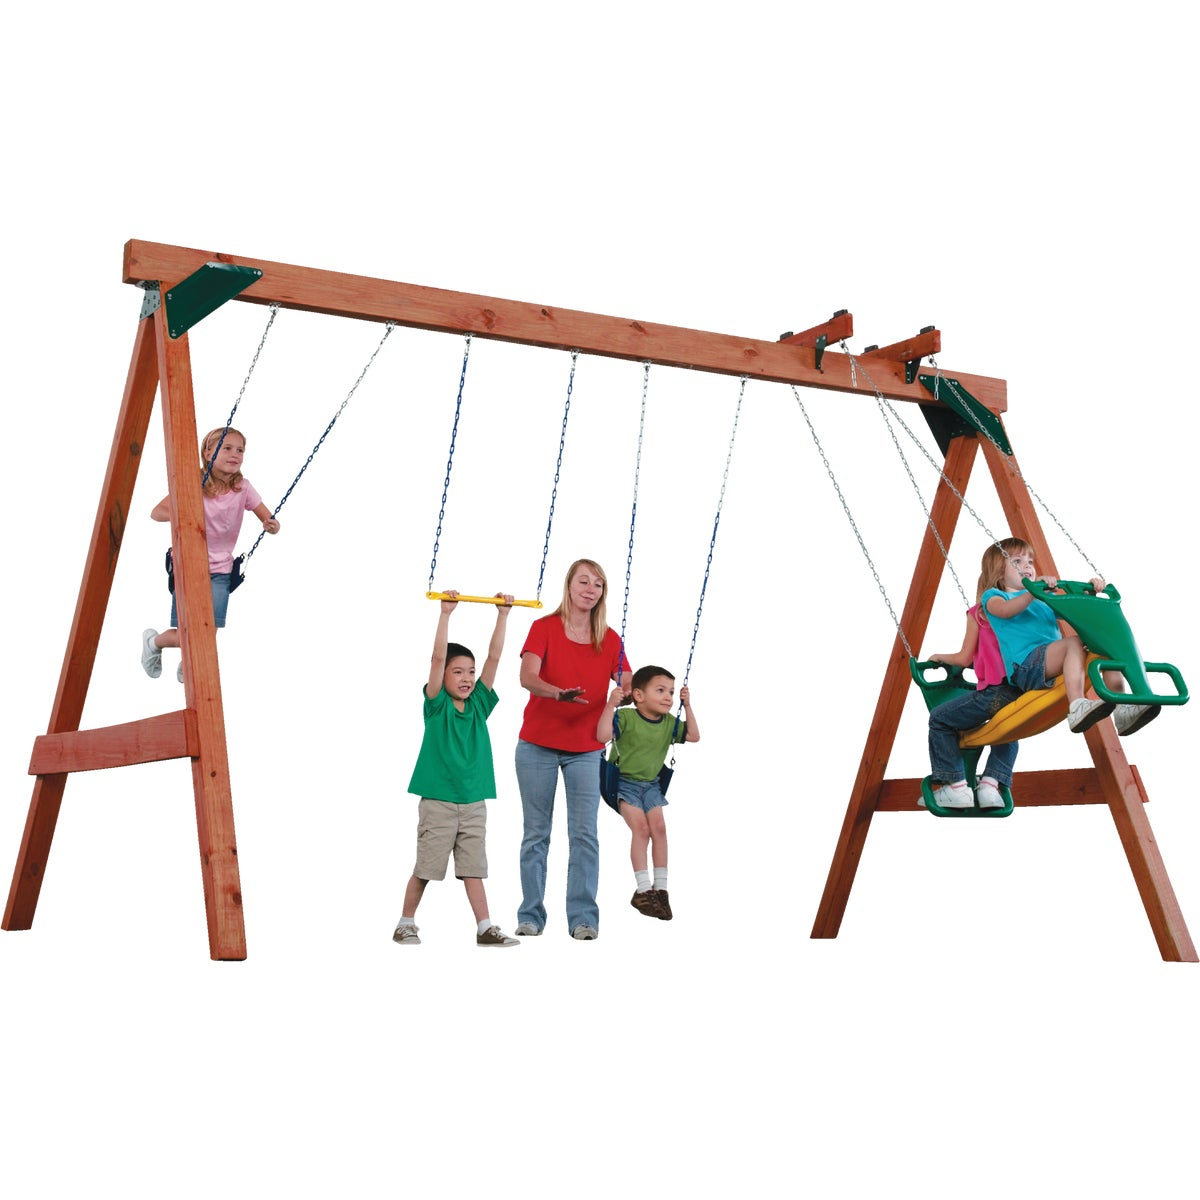 SCOUT SWING SET KIT